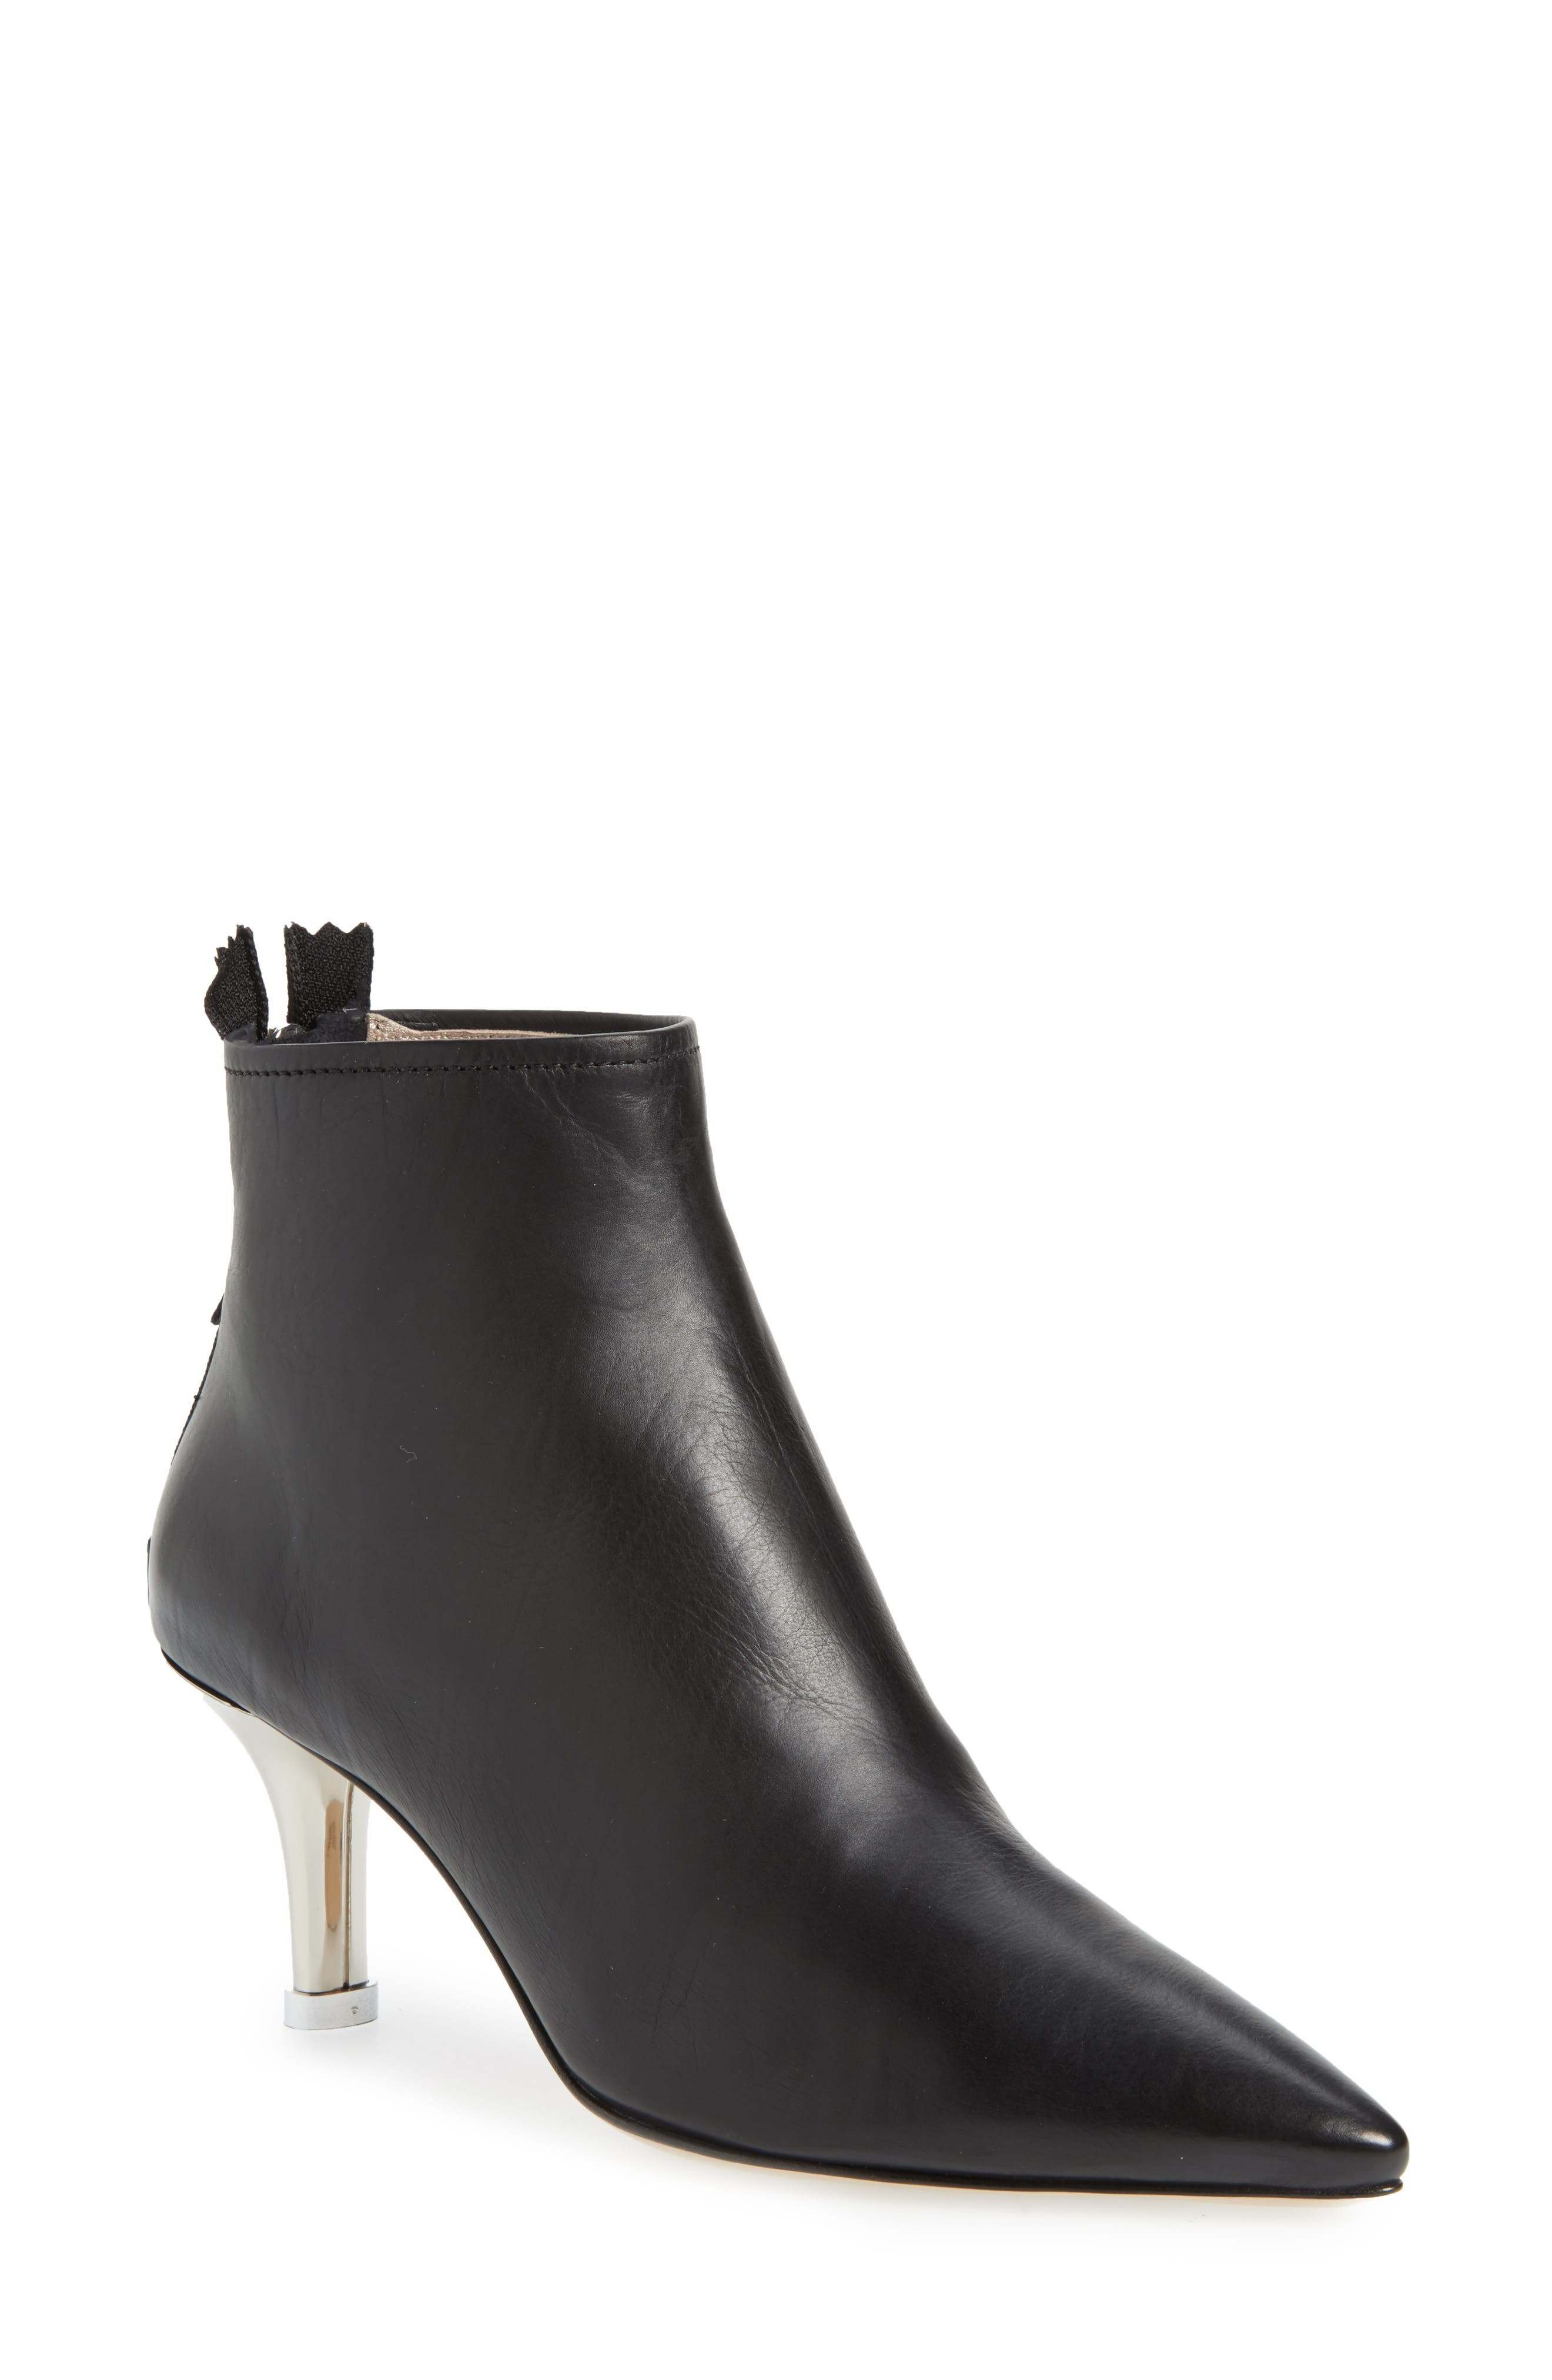 AGL ATTILIO GIUSTI LEOMBRUNI Pointy Toe Bootie, Black Leather